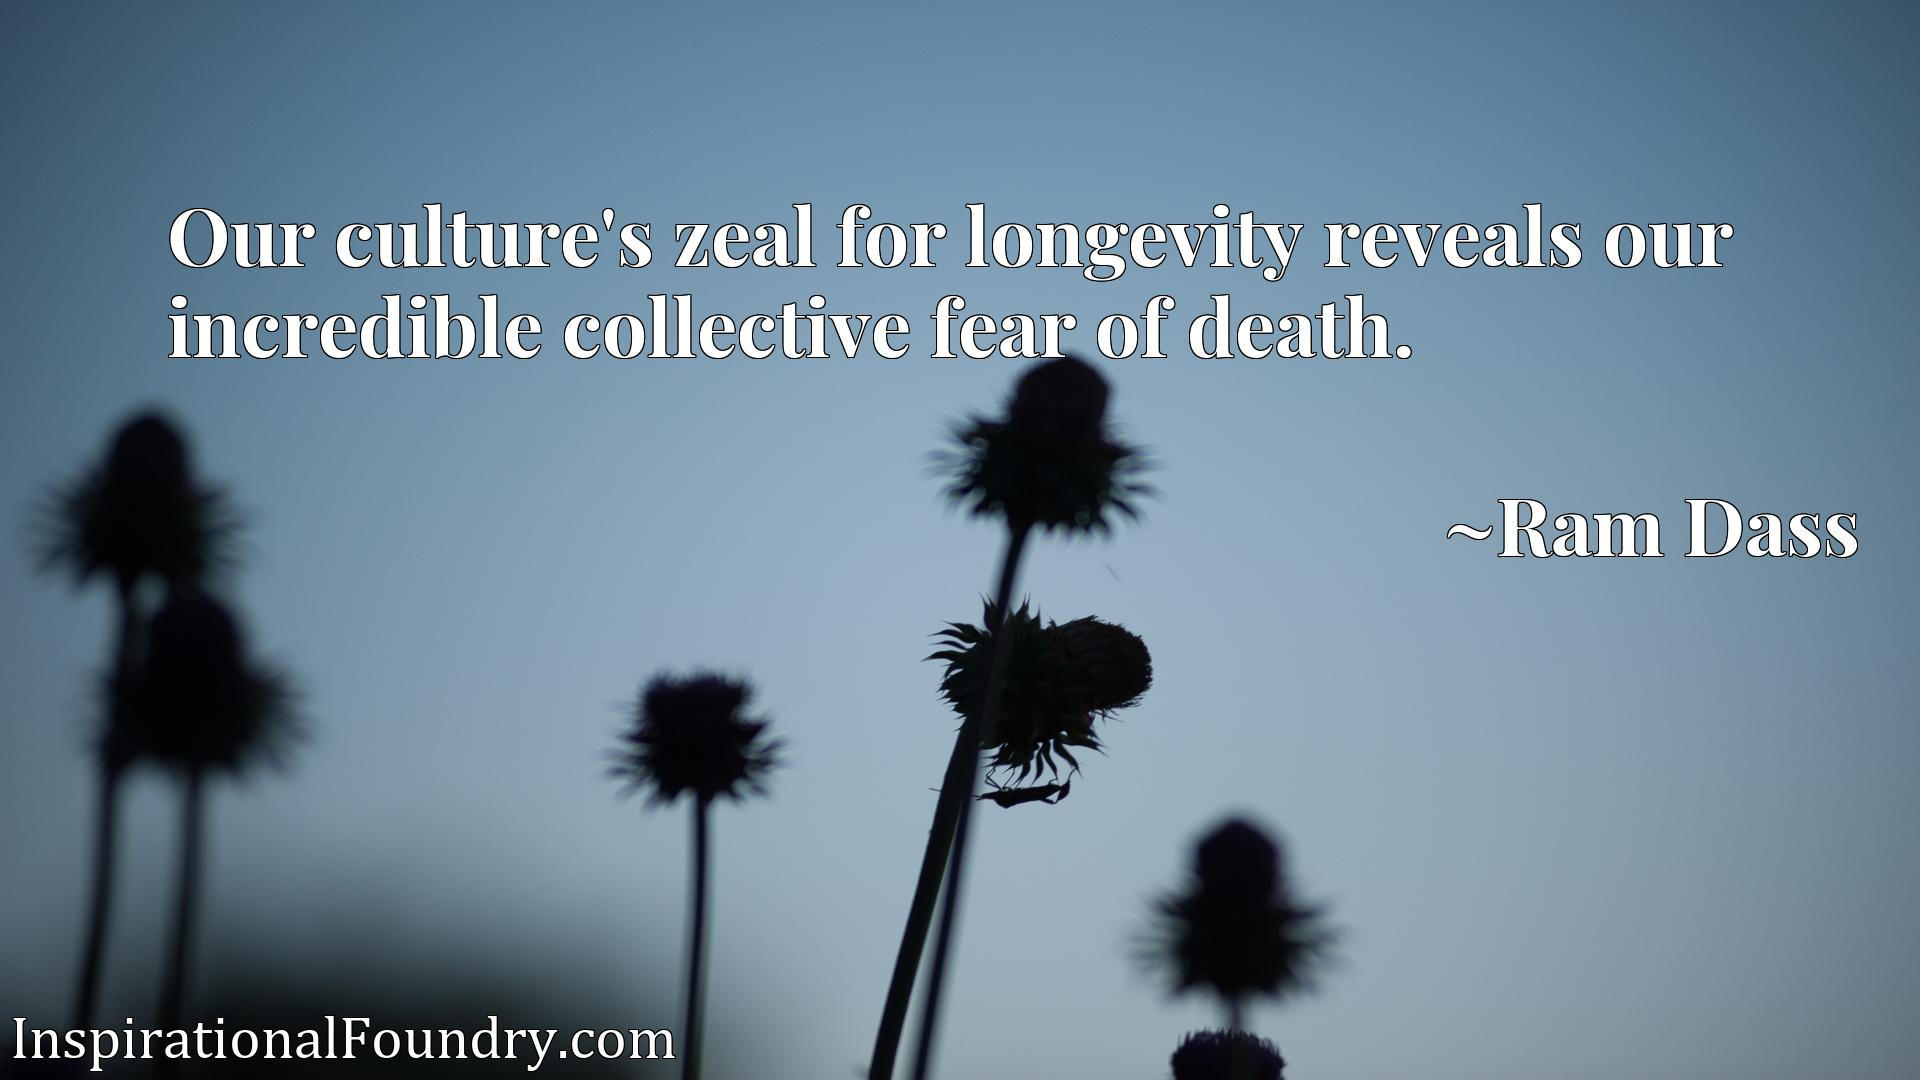 Our culture's zeal for longevity reveals our incredible collective fear of death.